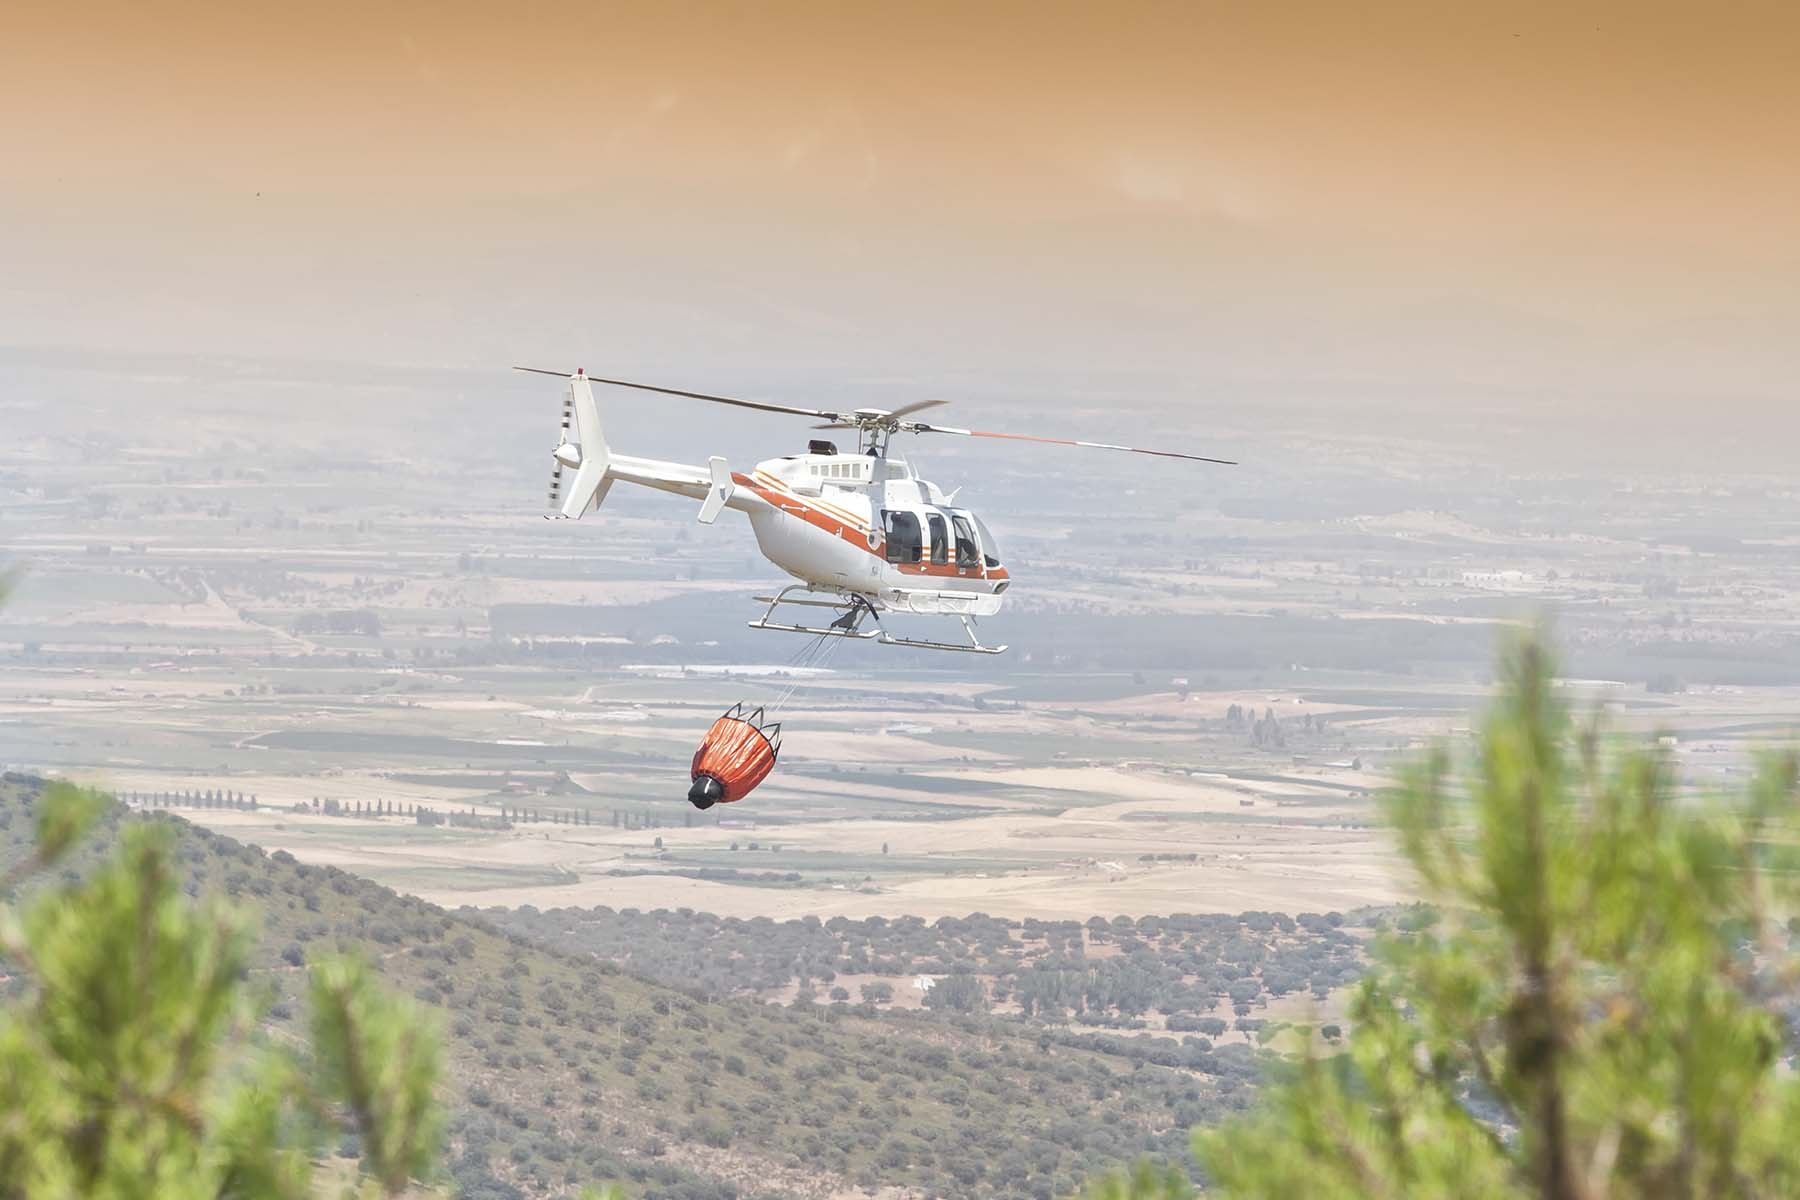 helicopter dropping water on a wildland fire